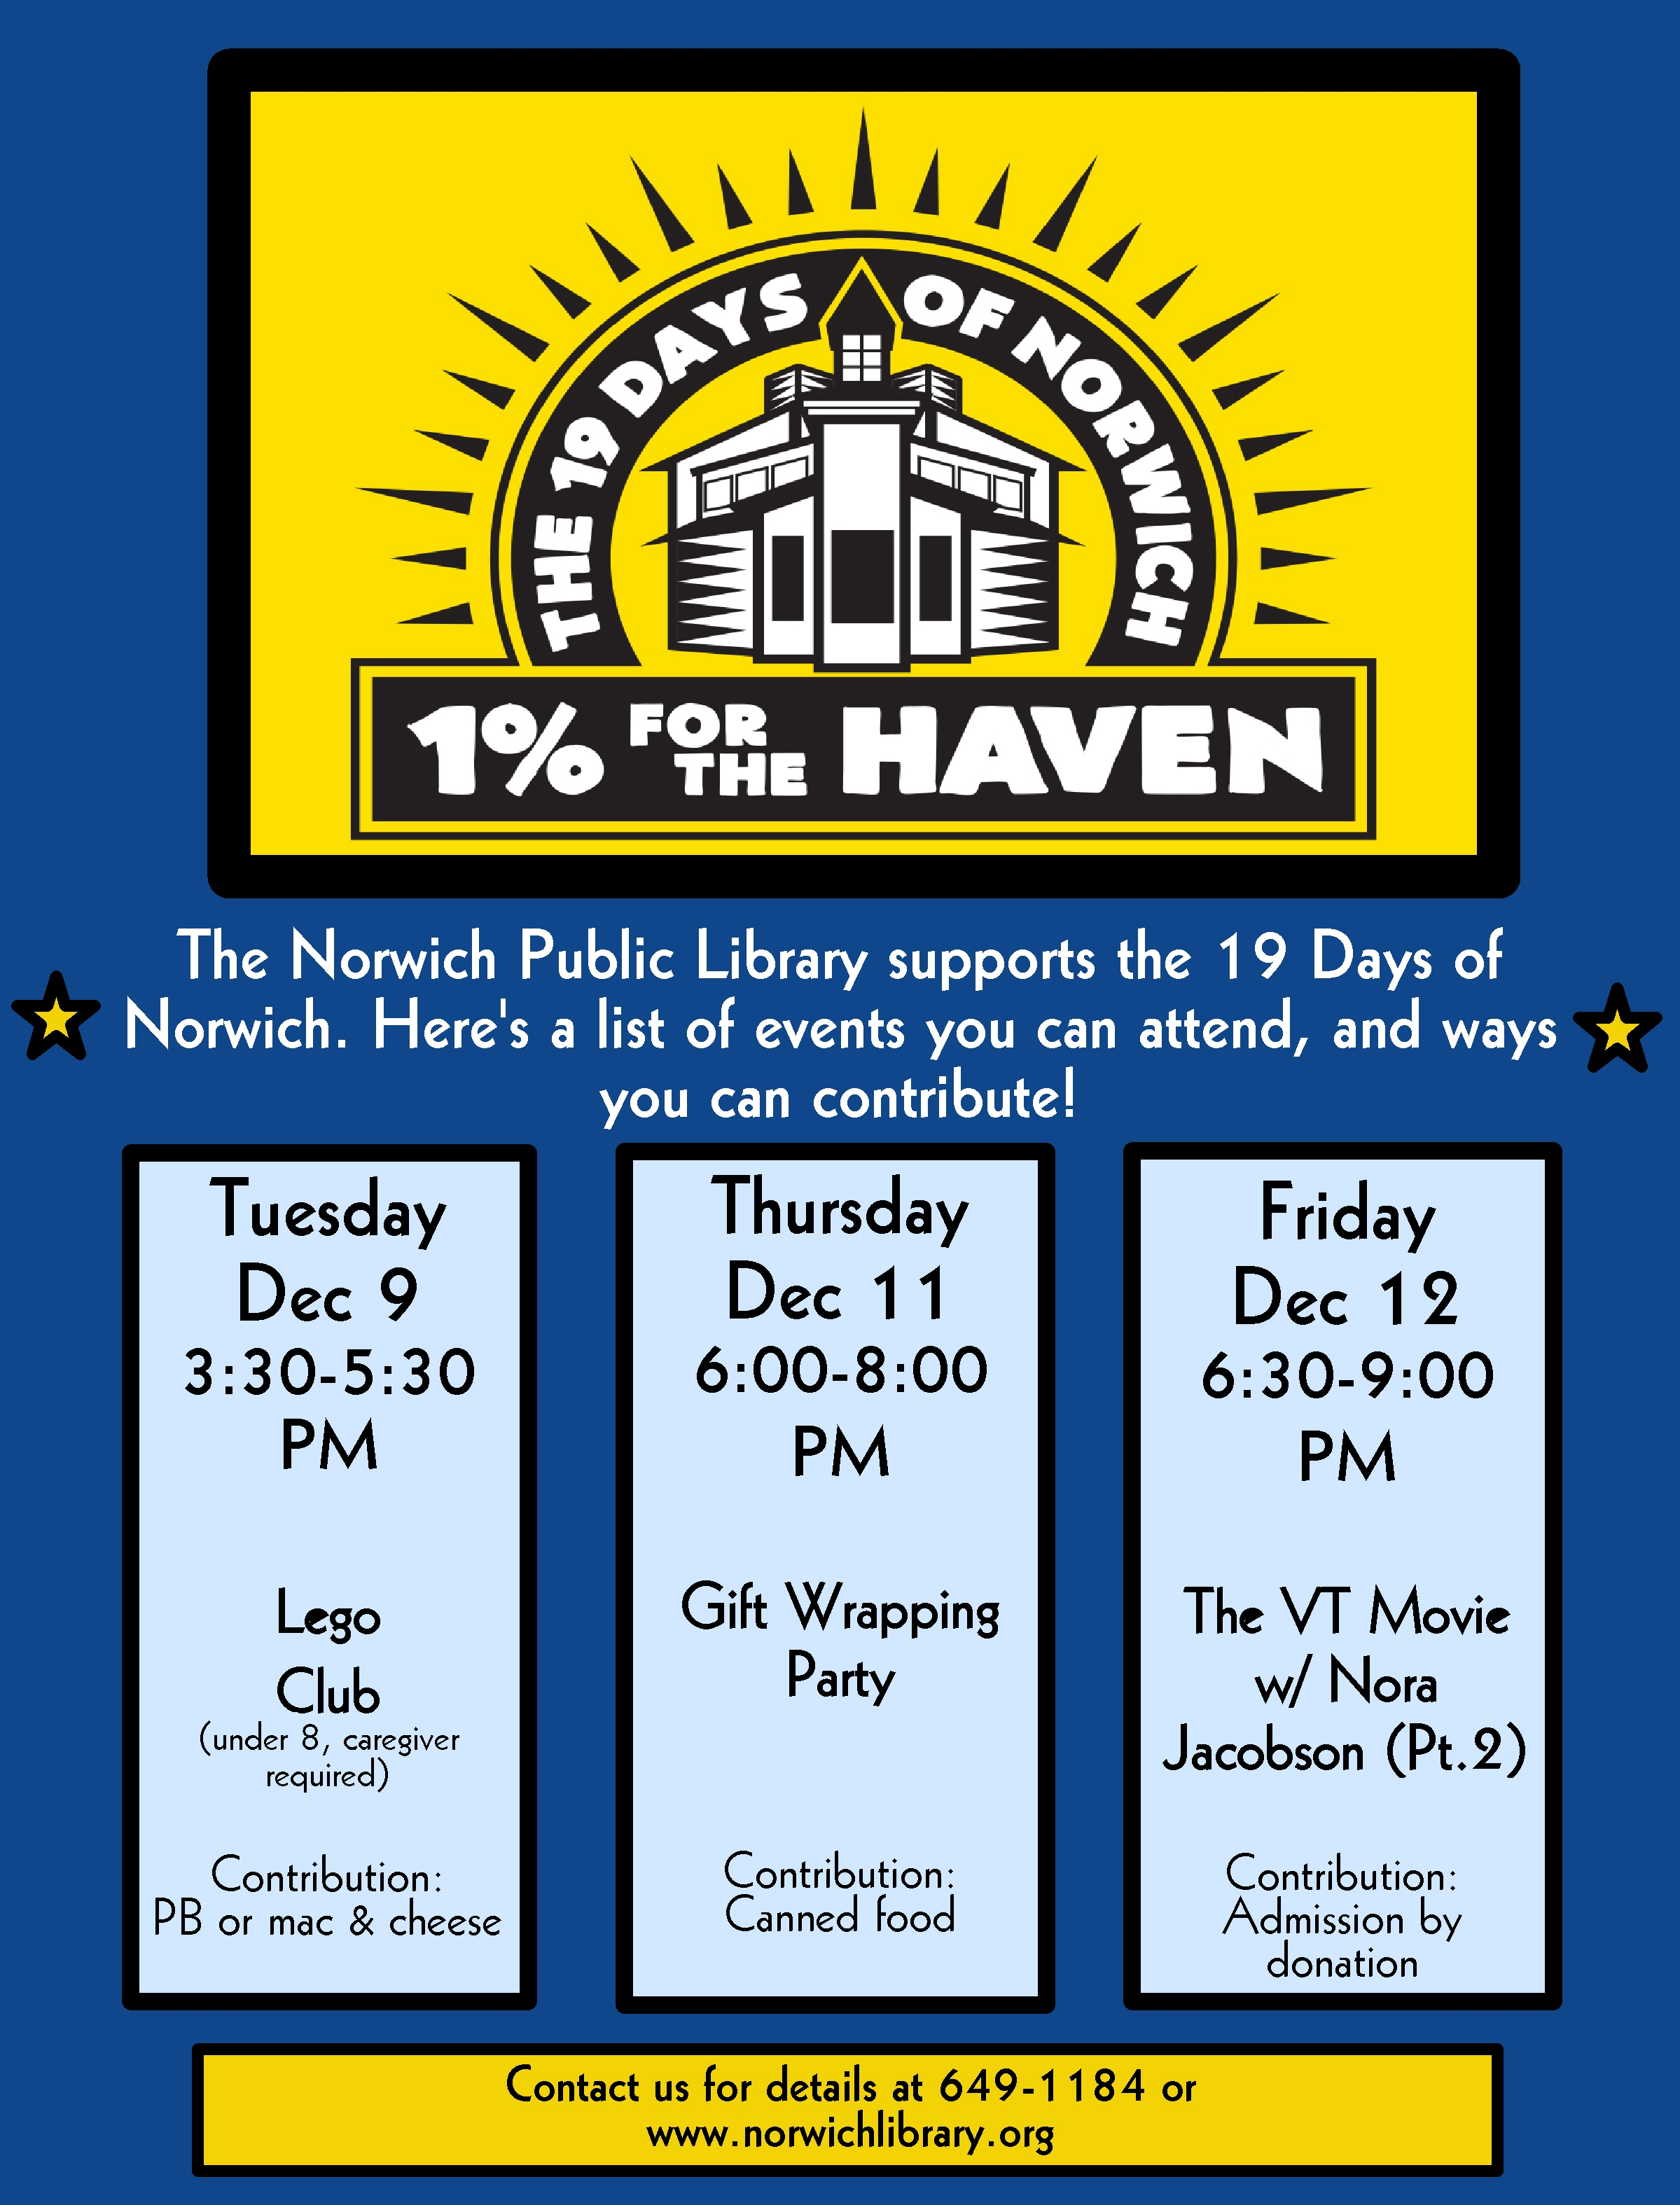 Events Benefiting 19 Days of Norwich